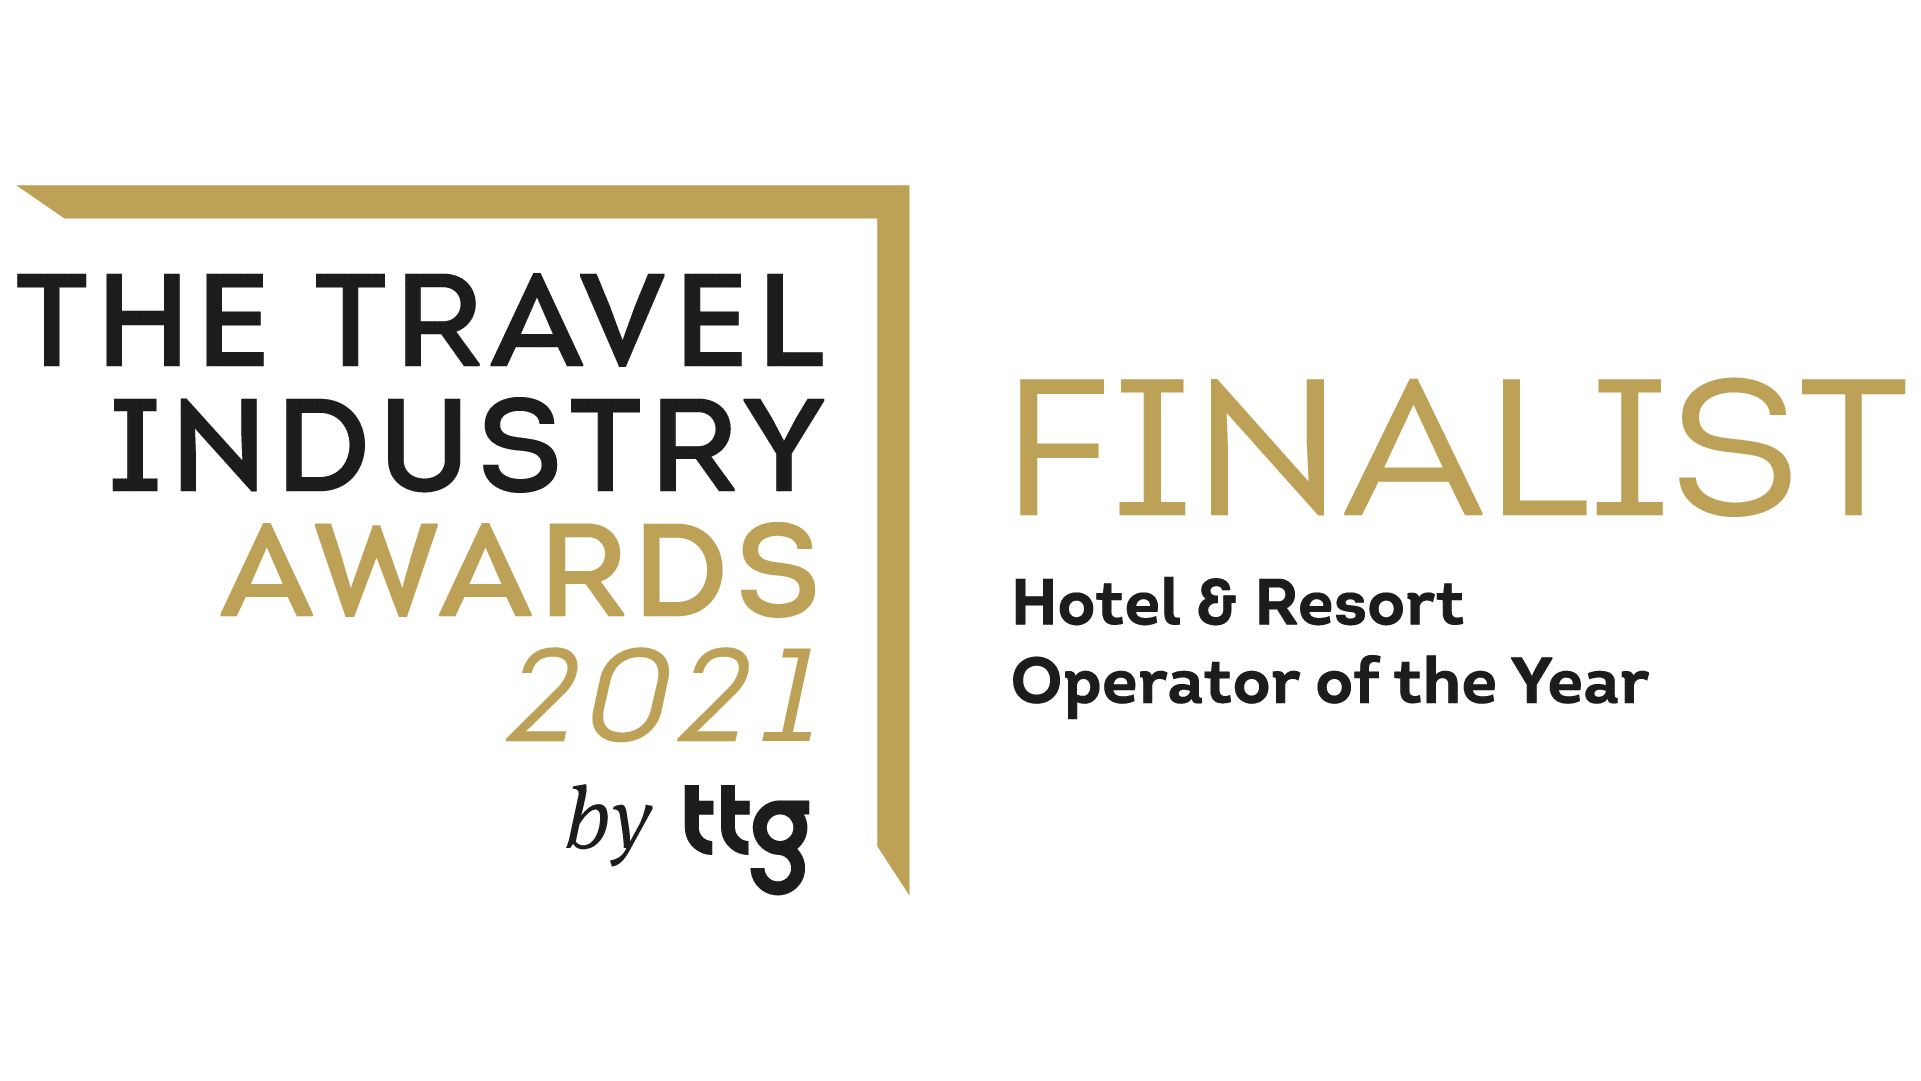 Cayo Exclusive Resort & Spa enters the finalists of the Travel Industry Awards by TTG.